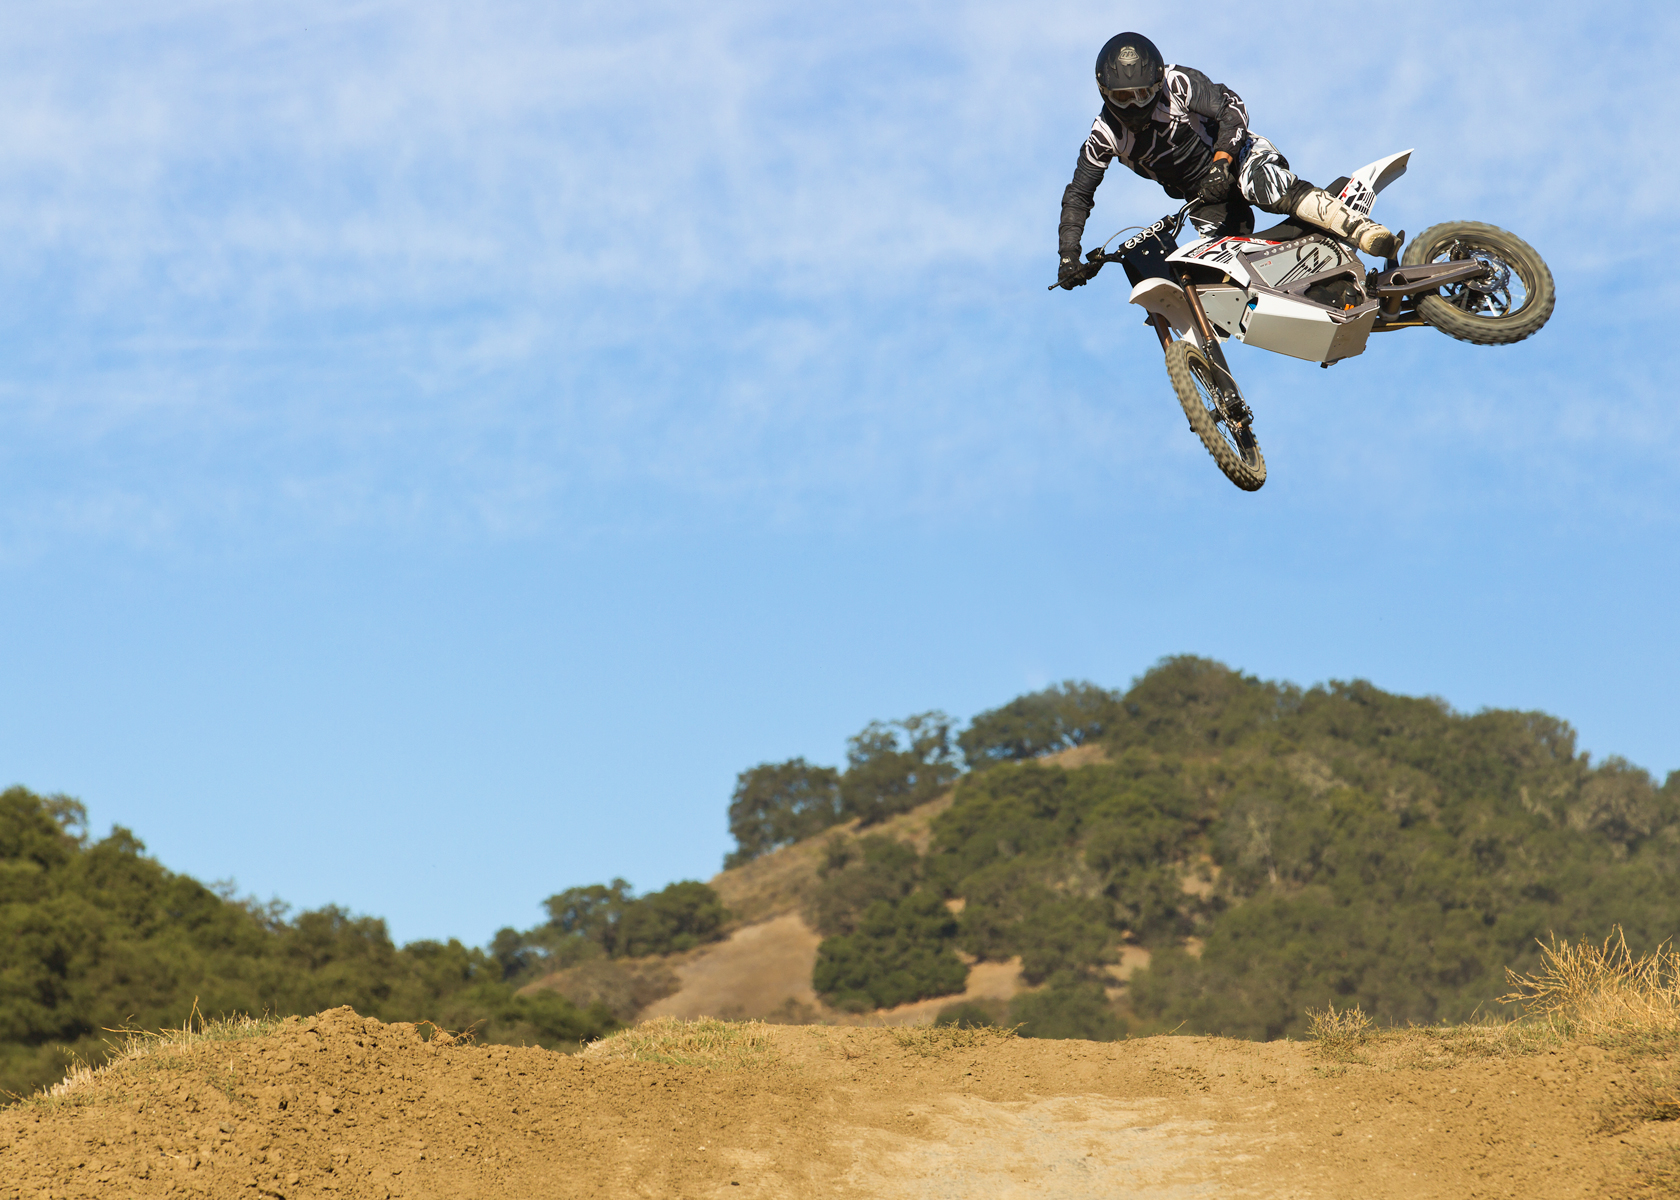 2012 Zero MX Electric Motorcycle: High Jump